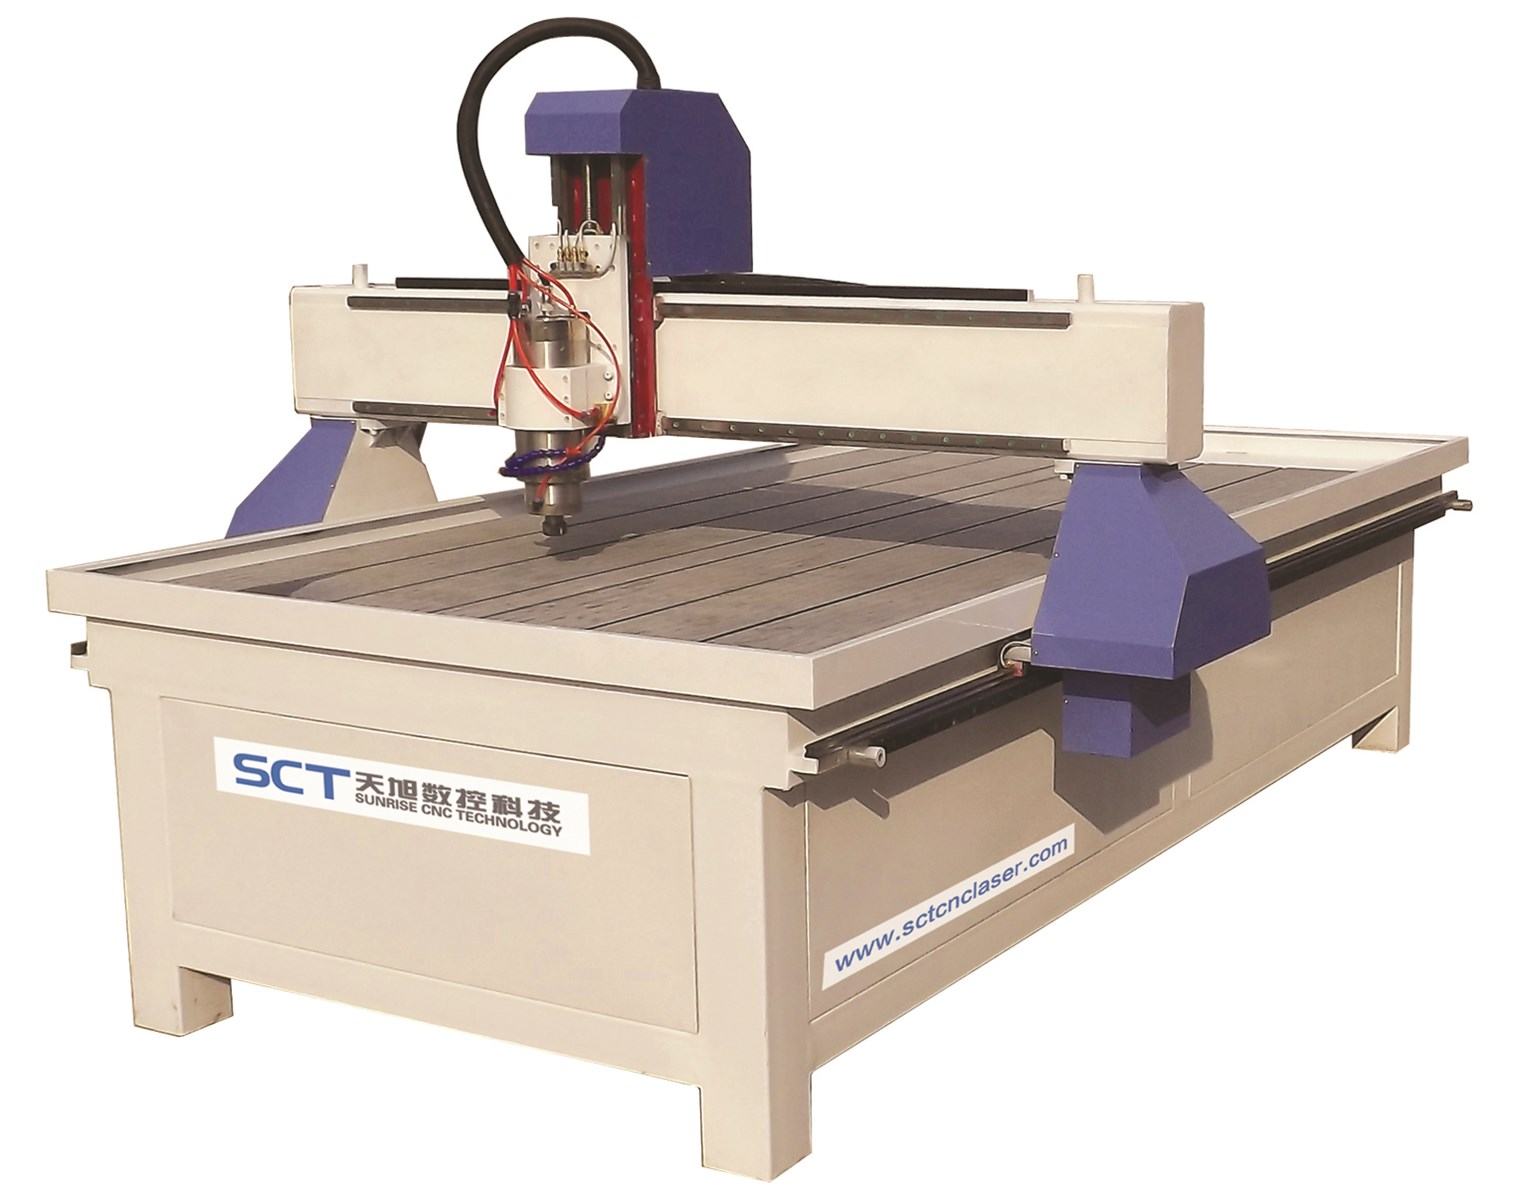 SCTS6090L Advertising Material Engraving Cutting Multifunctions CNC Router